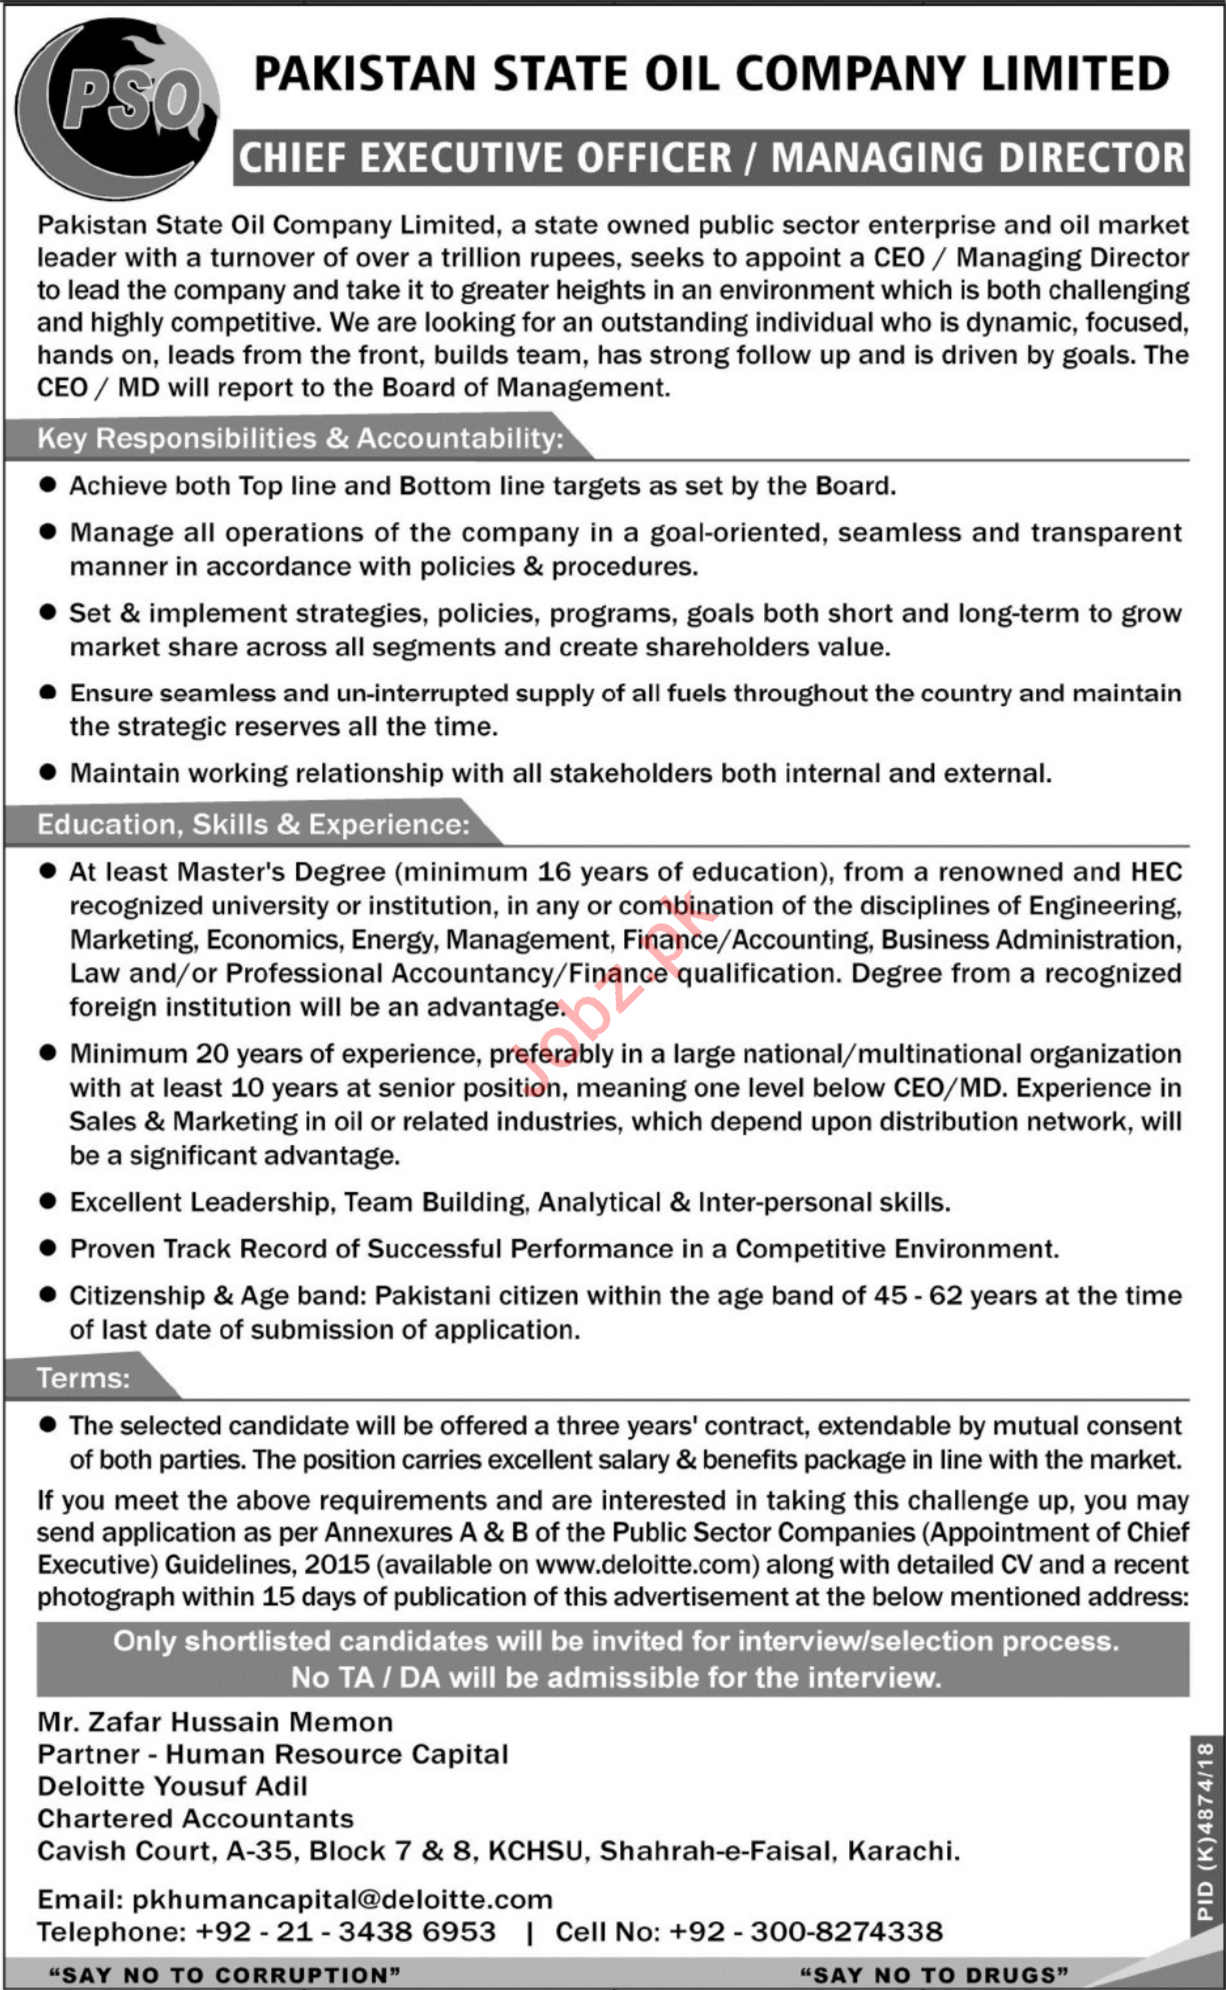 PSO Pakistan State Oil Company Limited Karachi Jobs 2019